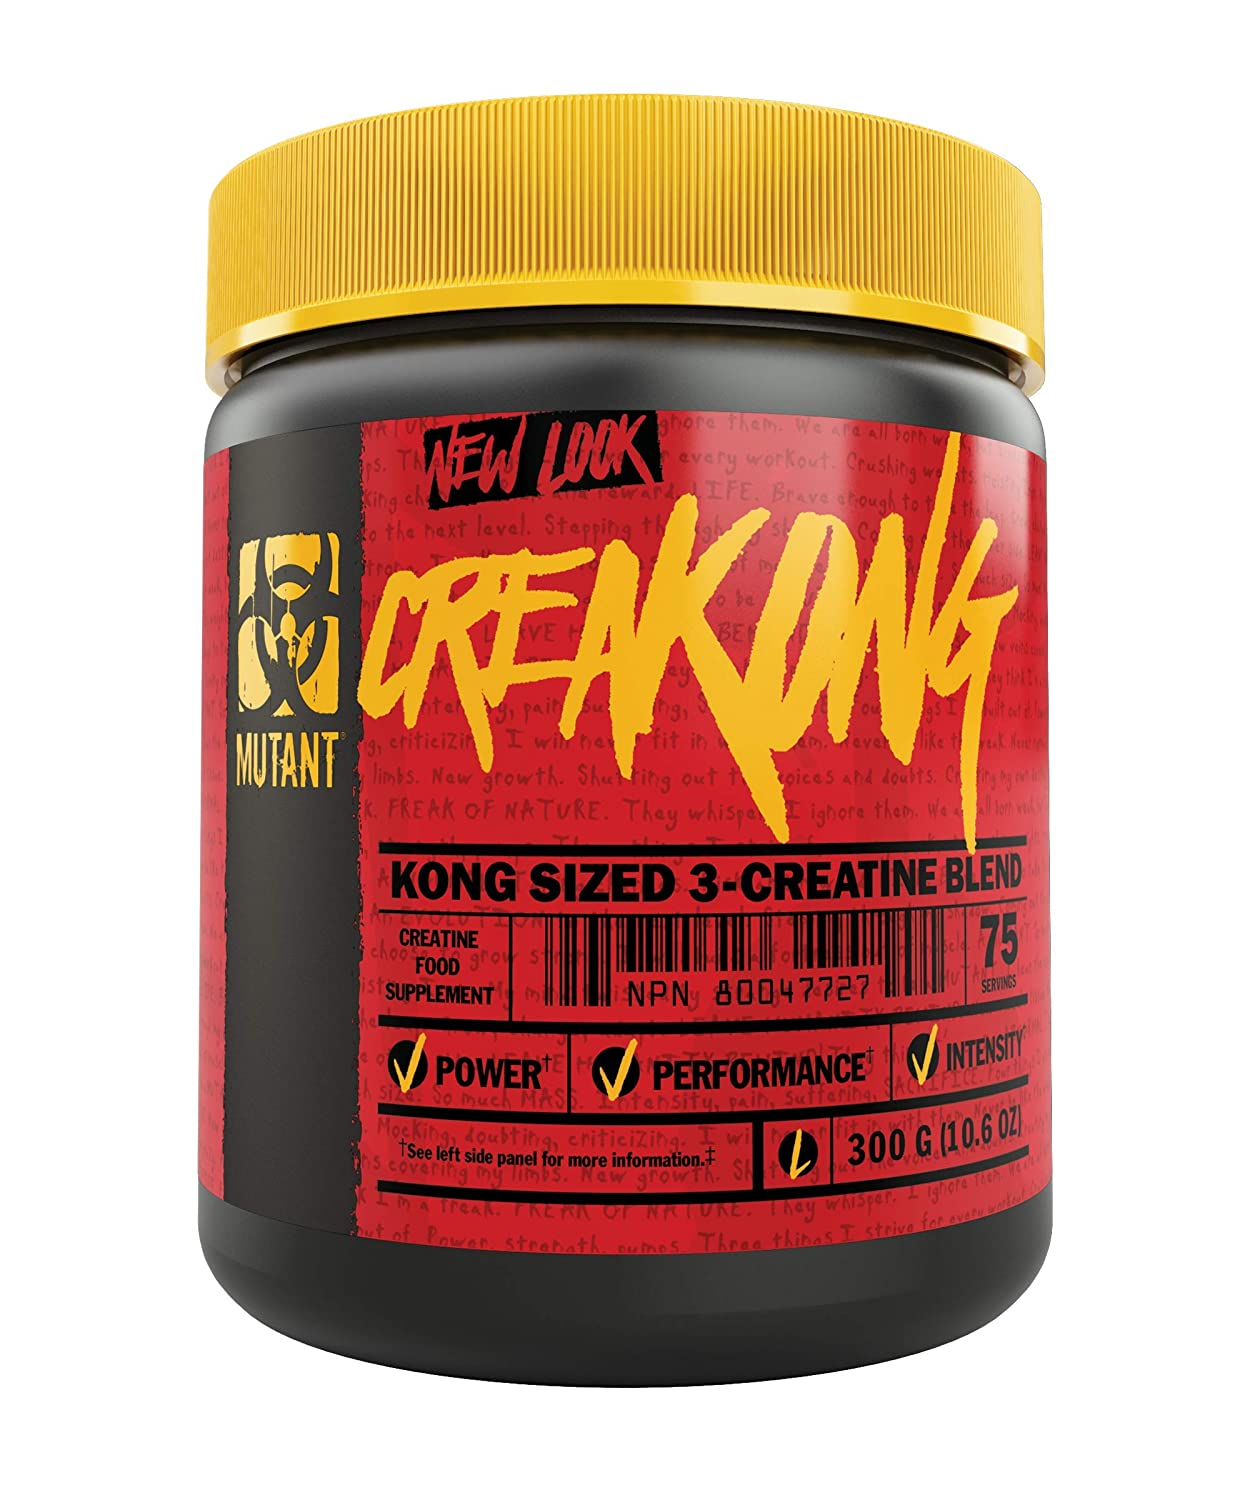 Amazon.com: Mutant creakong – 300 g de entregar Sheer sin ...